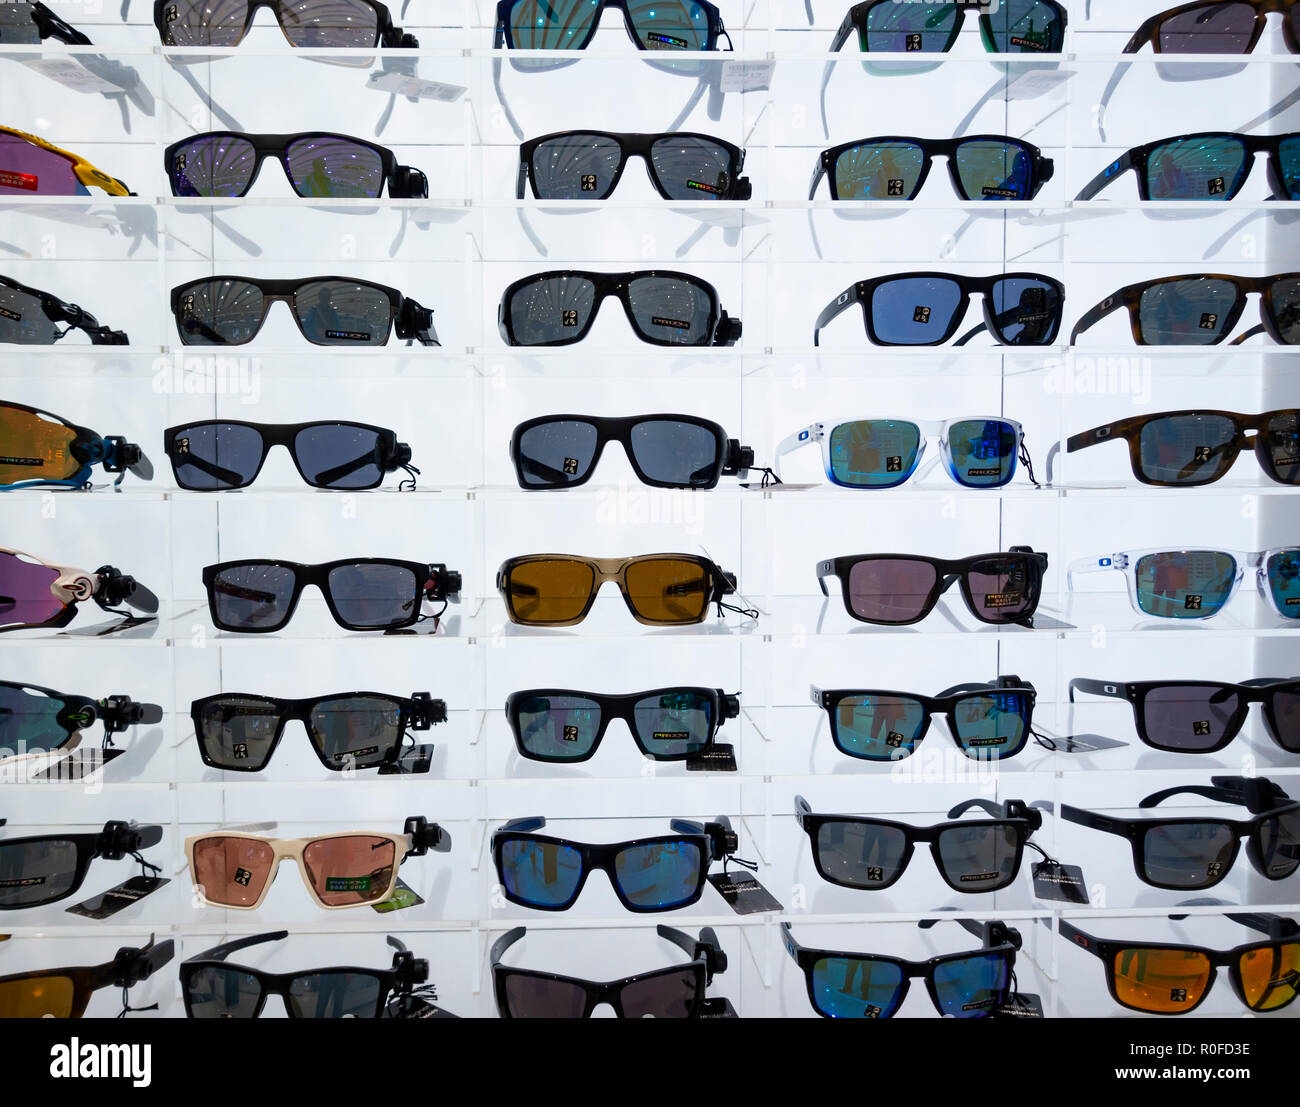 54aaac924dce Oakley Sunglasses Stock Photos & Oakley Sunglasses Stock Images - Alamy